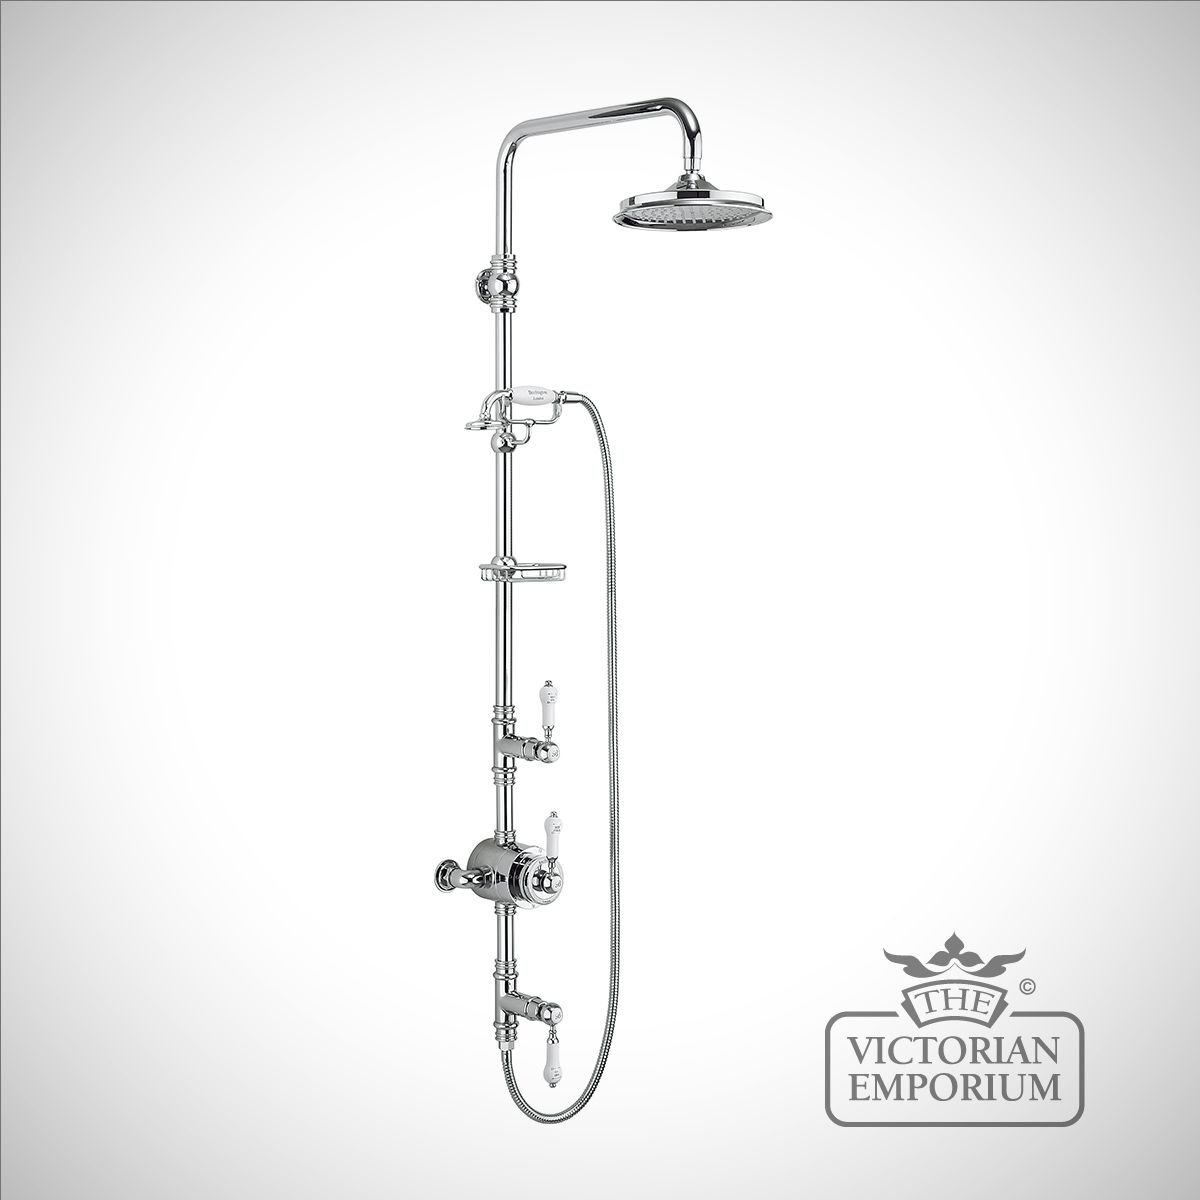 Stowe Thermostatic Exposed Shower Valve Two Outlet, Rigid Riser ...